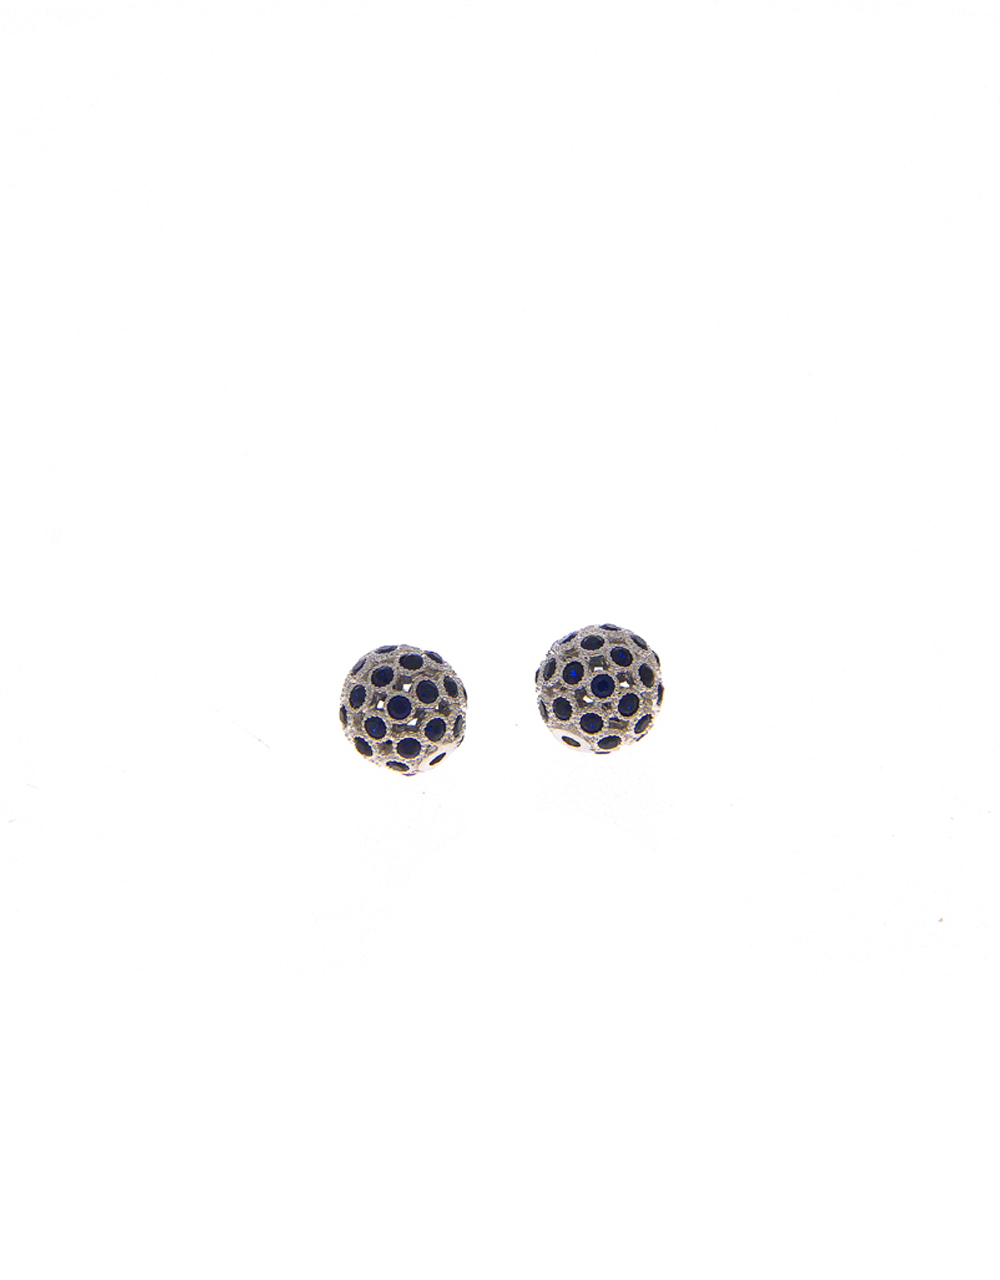 Jewellery Accessories/Material